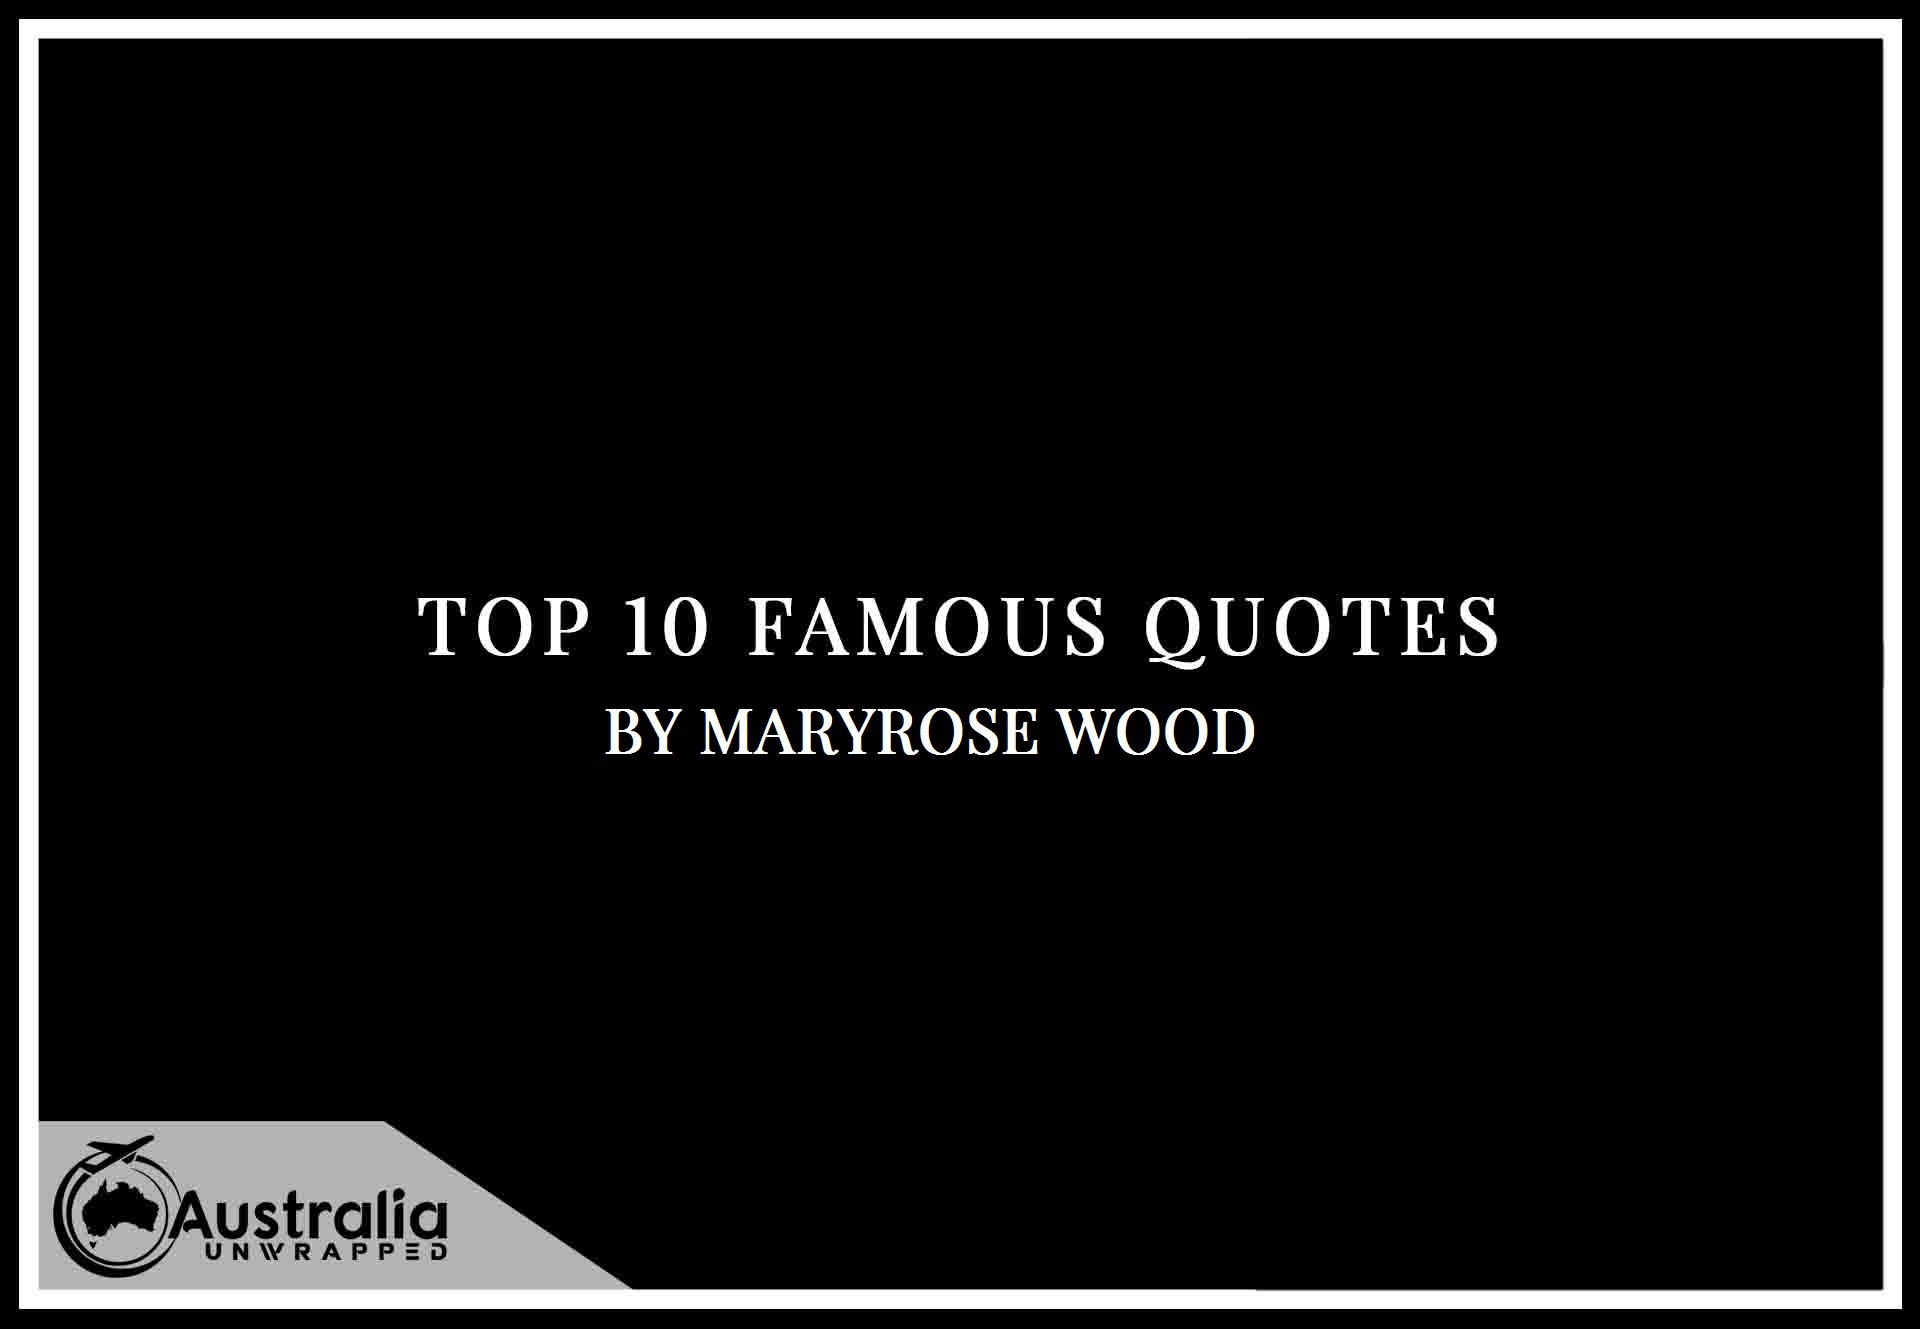 Maryrose Wood's Top 10 Popular and Famous Quotes